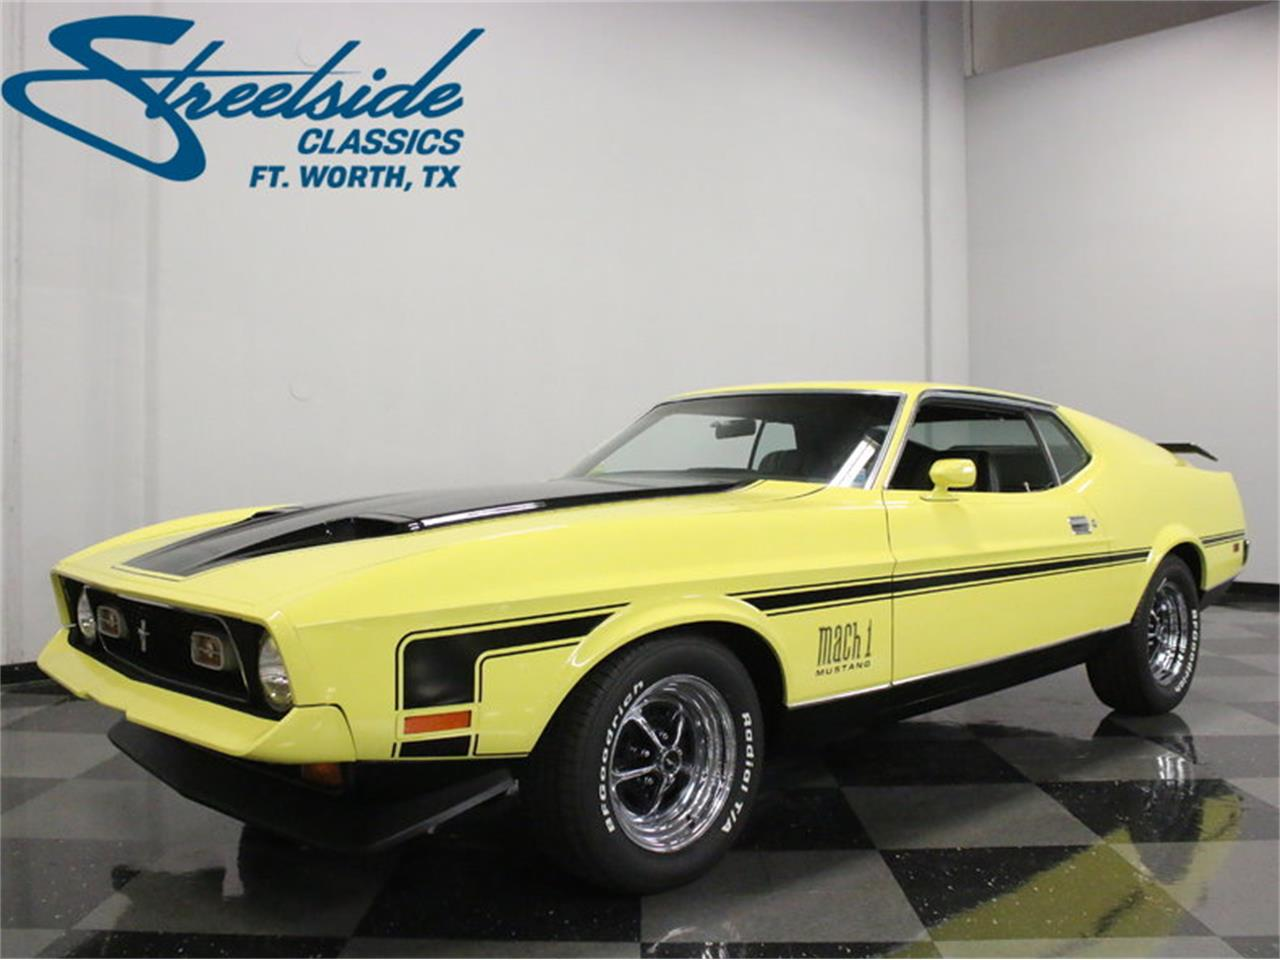 For sale 1971 ford mustang mach 1 cobra jet in ft worth texas